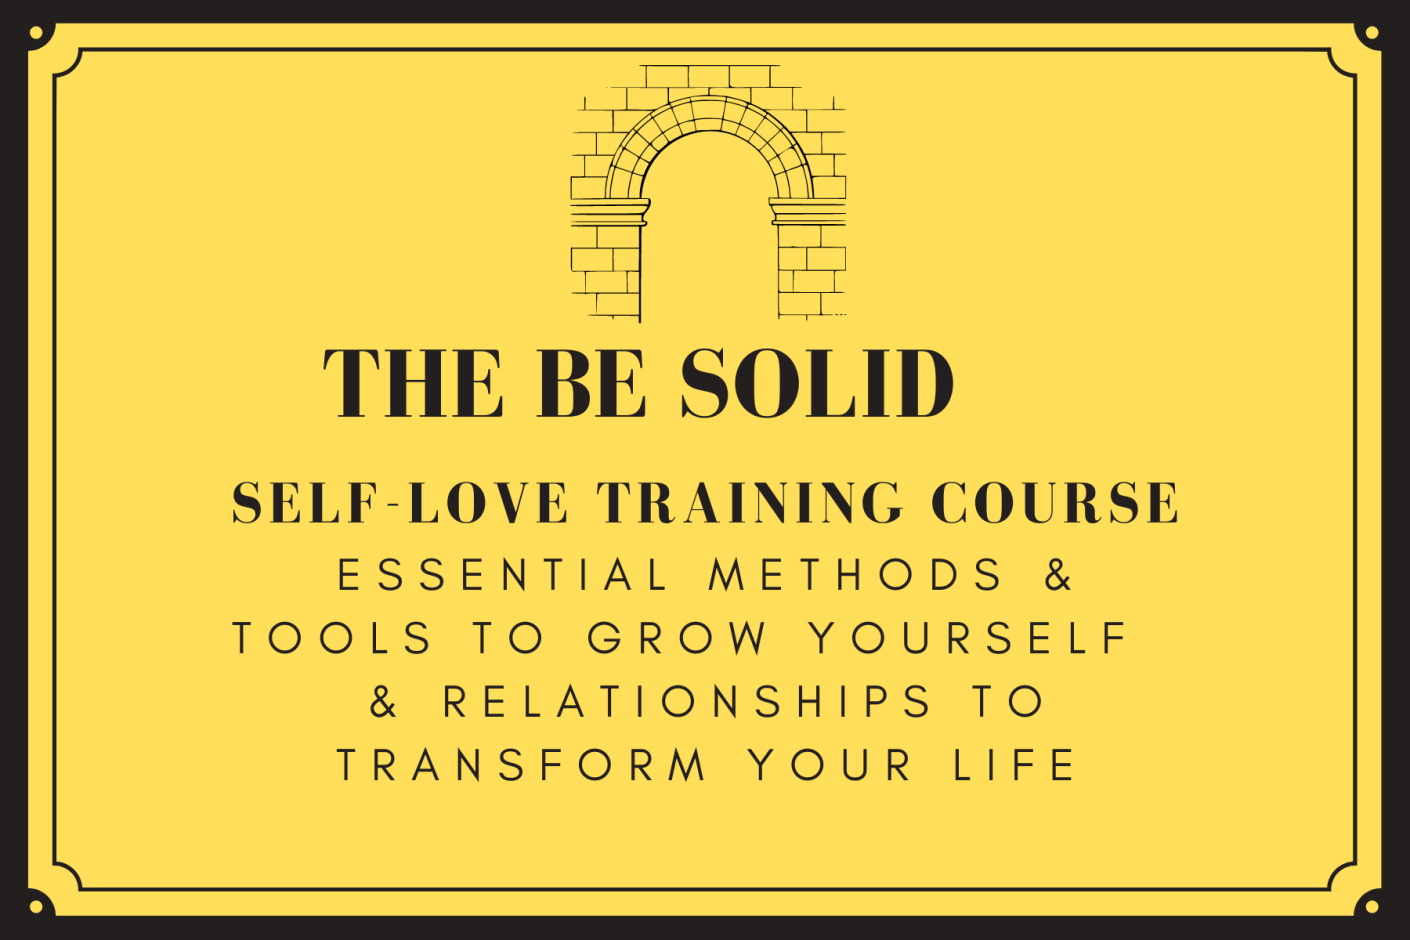 self-love training course be solid dgrantsmith